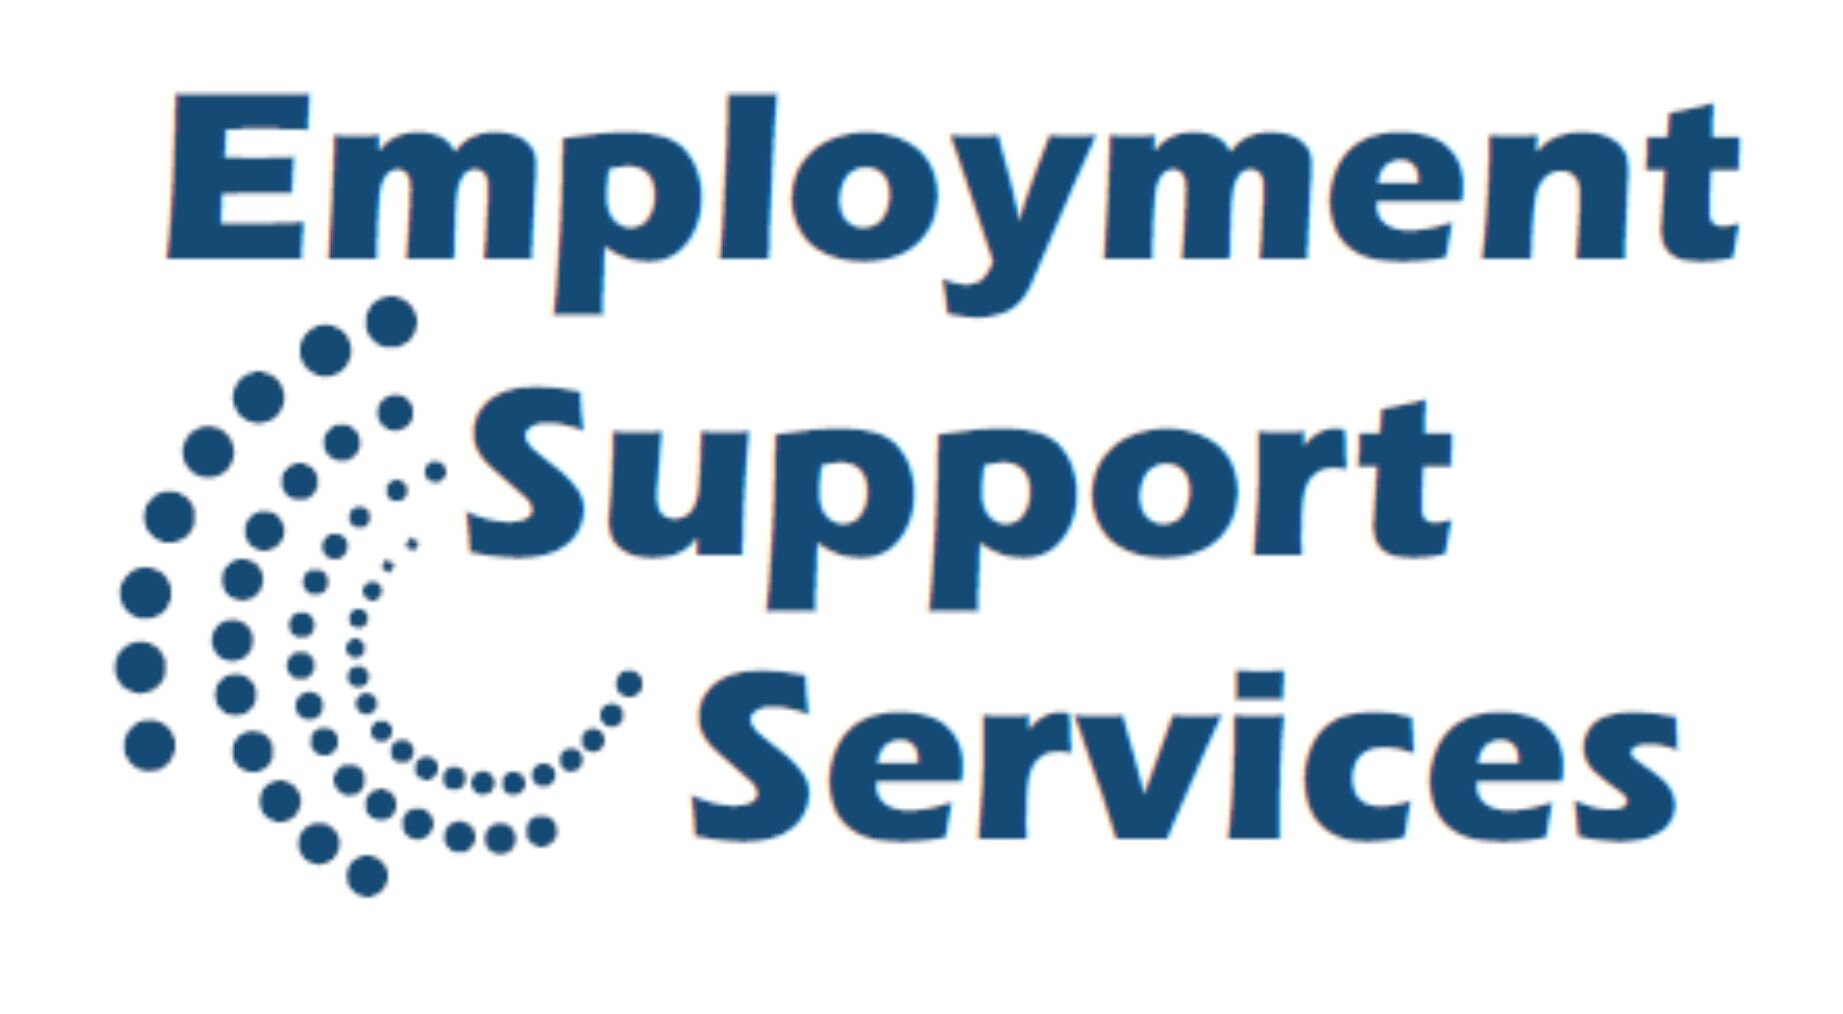 Employment Support Services logo text